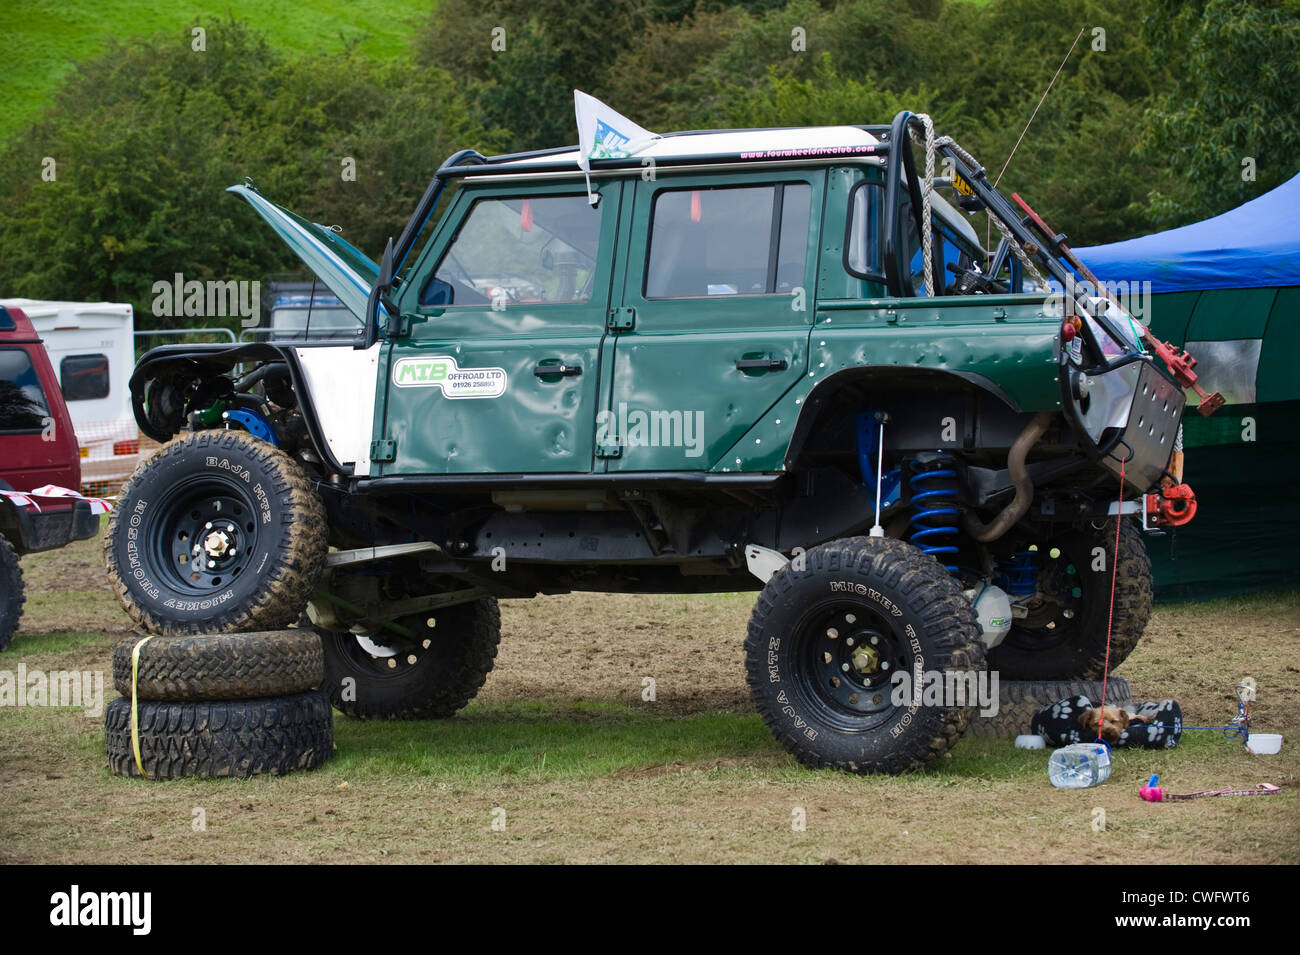 Land Rover Defender Dashboard >> Highly modified 4x4 Land Rover Defender 110 for extreme offroading at Stock Photo: 50136694 - Alamy